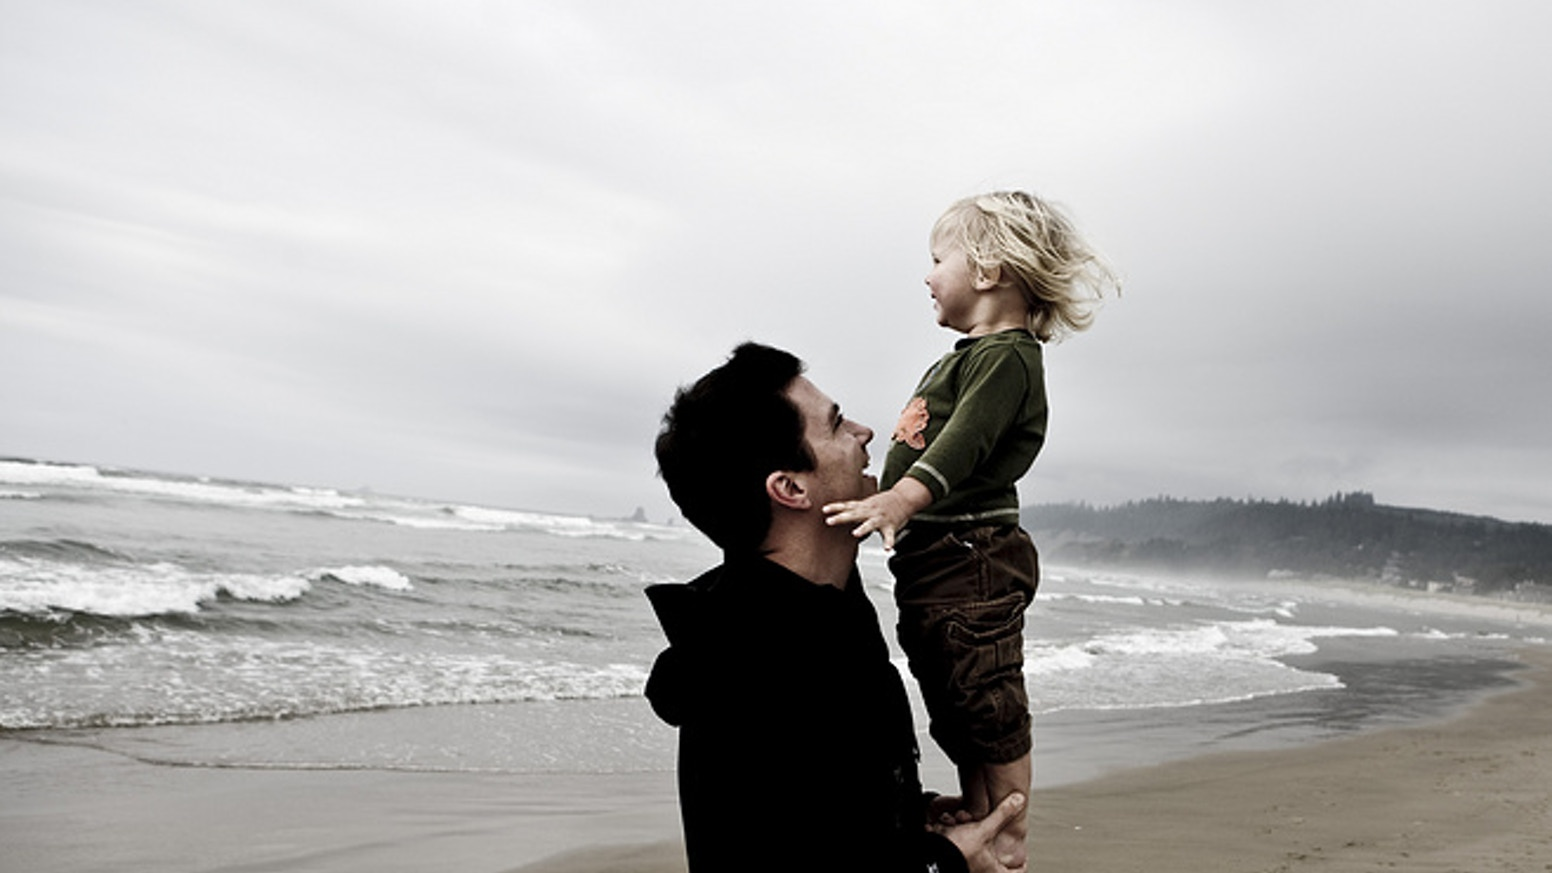 Resources for dads are in short supply. This project connects fathers to one another & with resources to answer their tough questions. Check out www.ask-a-dad.com or follow us on Twitter (@Ask_ADad) to connect!